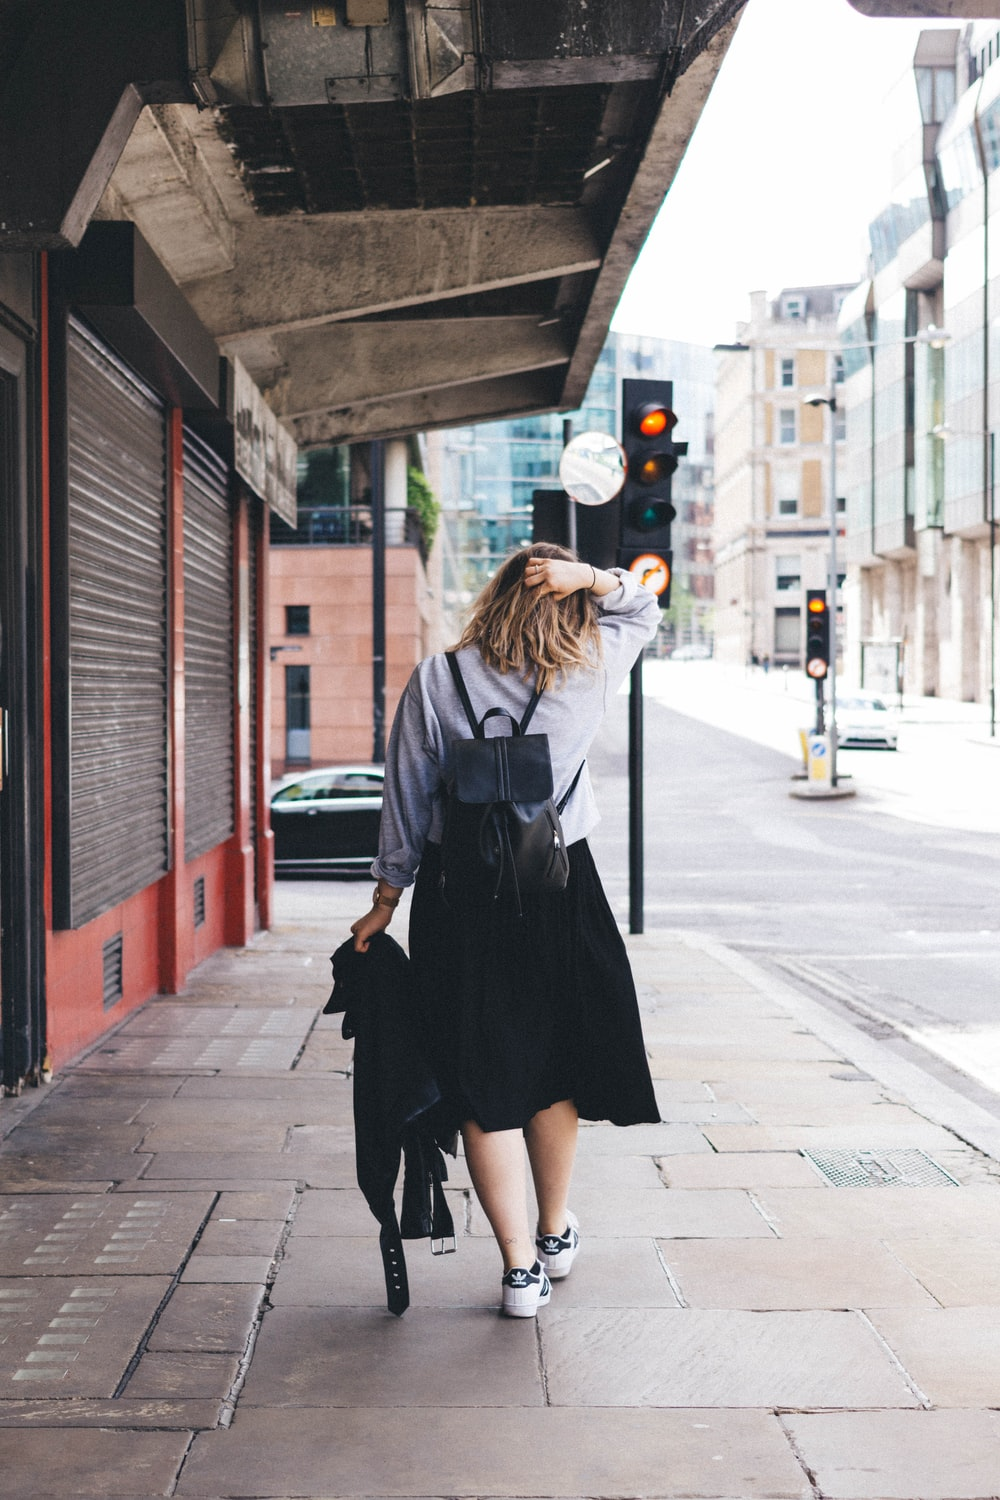 woman wearing gray dress shirt with black skirt and black backpack